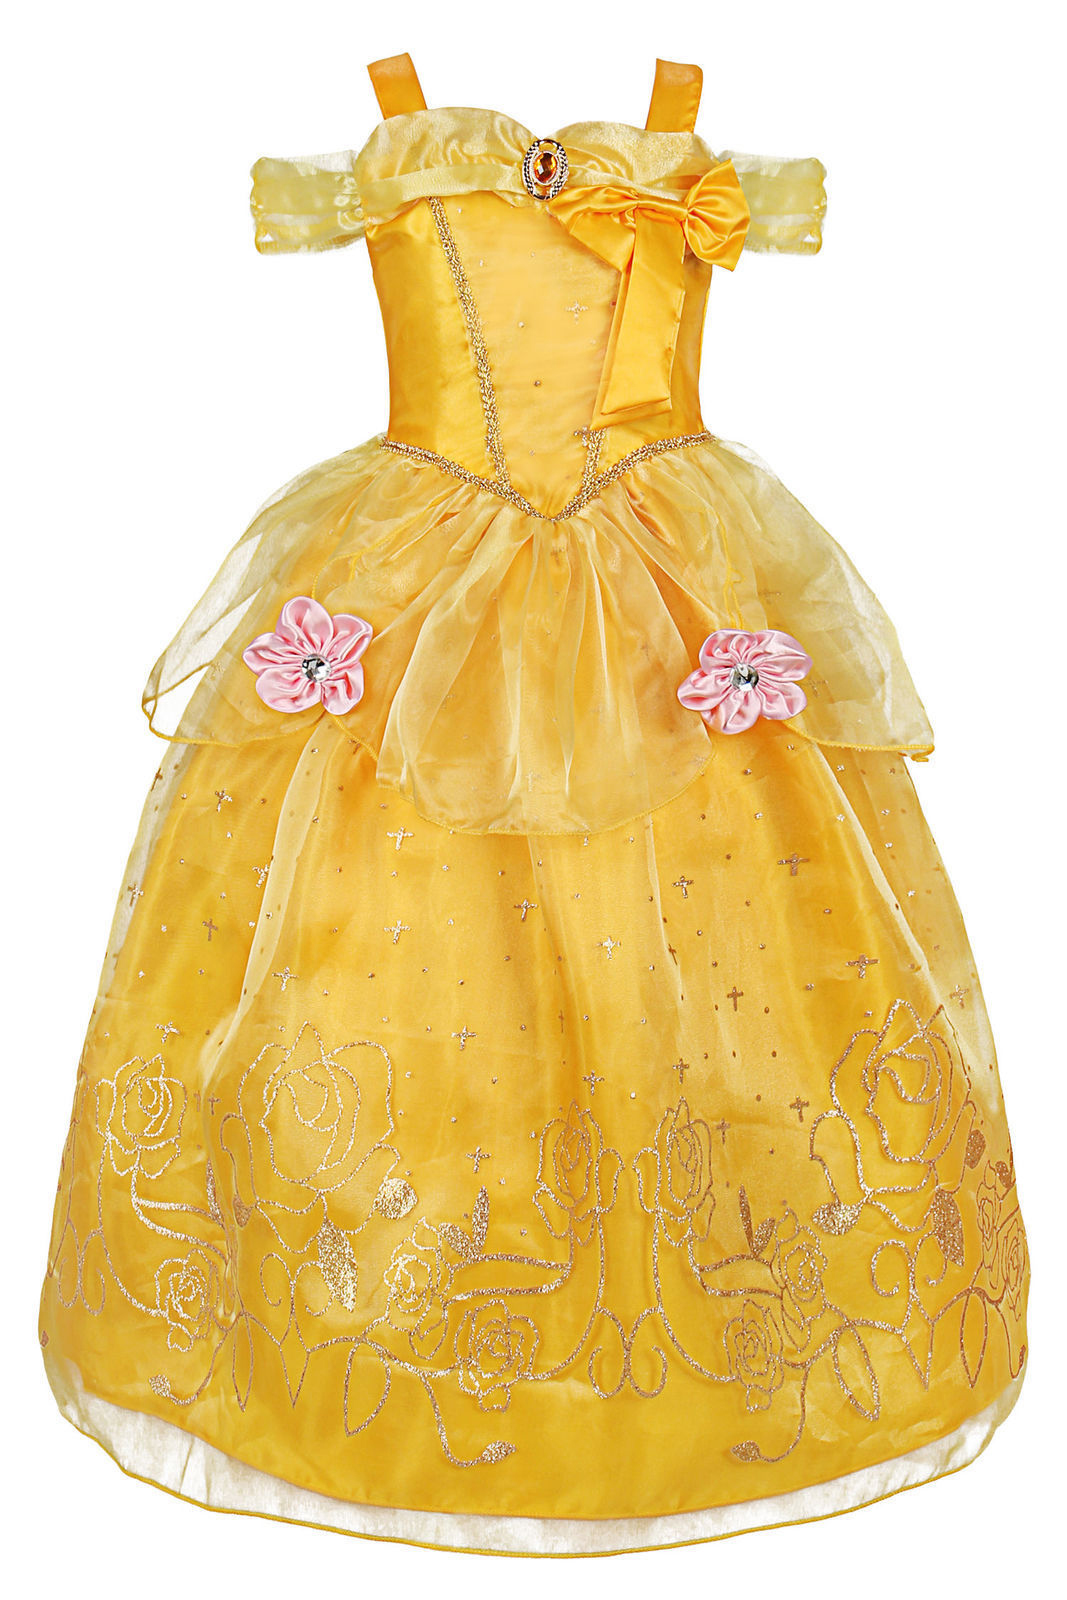 Hc339f6284b1e481dacfa1fa57da38bbdh - Fancy Baby Girl Princess Clothes Kid Jasmine Rapunzel Aurora Belle Ariel Cosplay Costume Child Elsa Anna Elena Sofia Party Dress